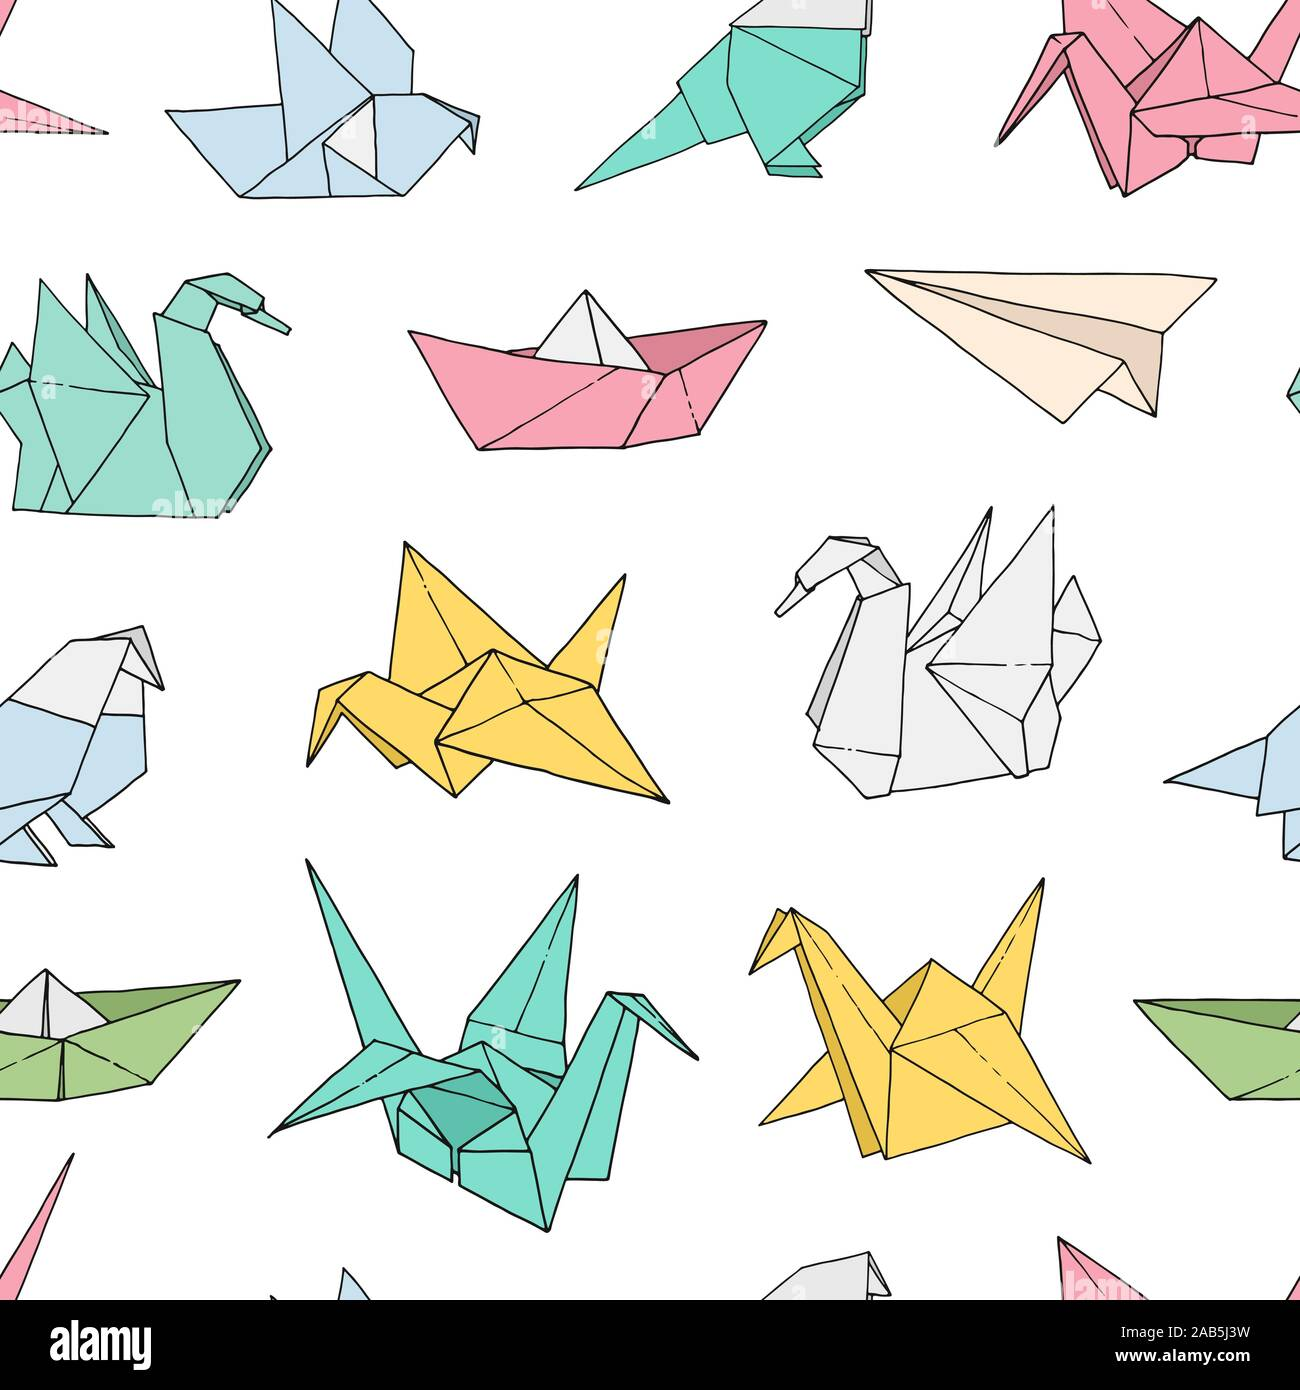 Origami and Geometry Lesson Plan for Grade 2 | 1390x1300